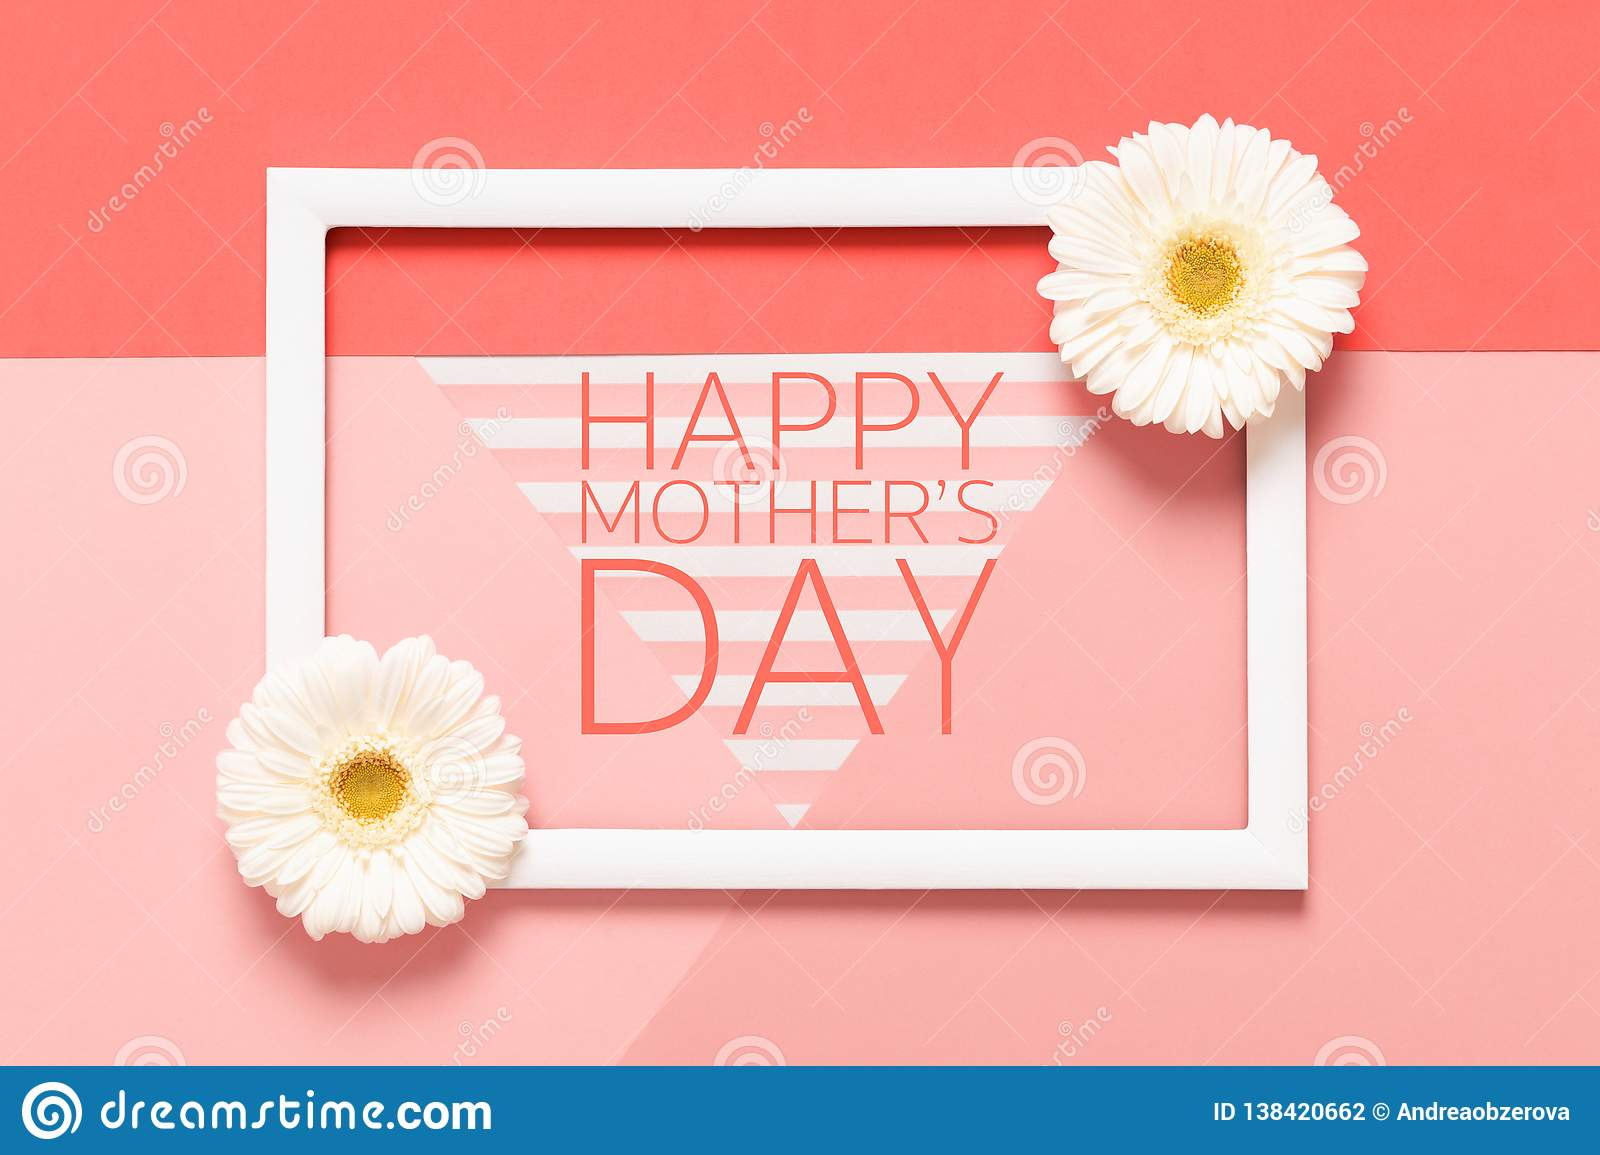 Happy Mother`s Day Living Coral Pantone Color Background. Flat lay mock up greeting card with beautiful gerbera flowers.